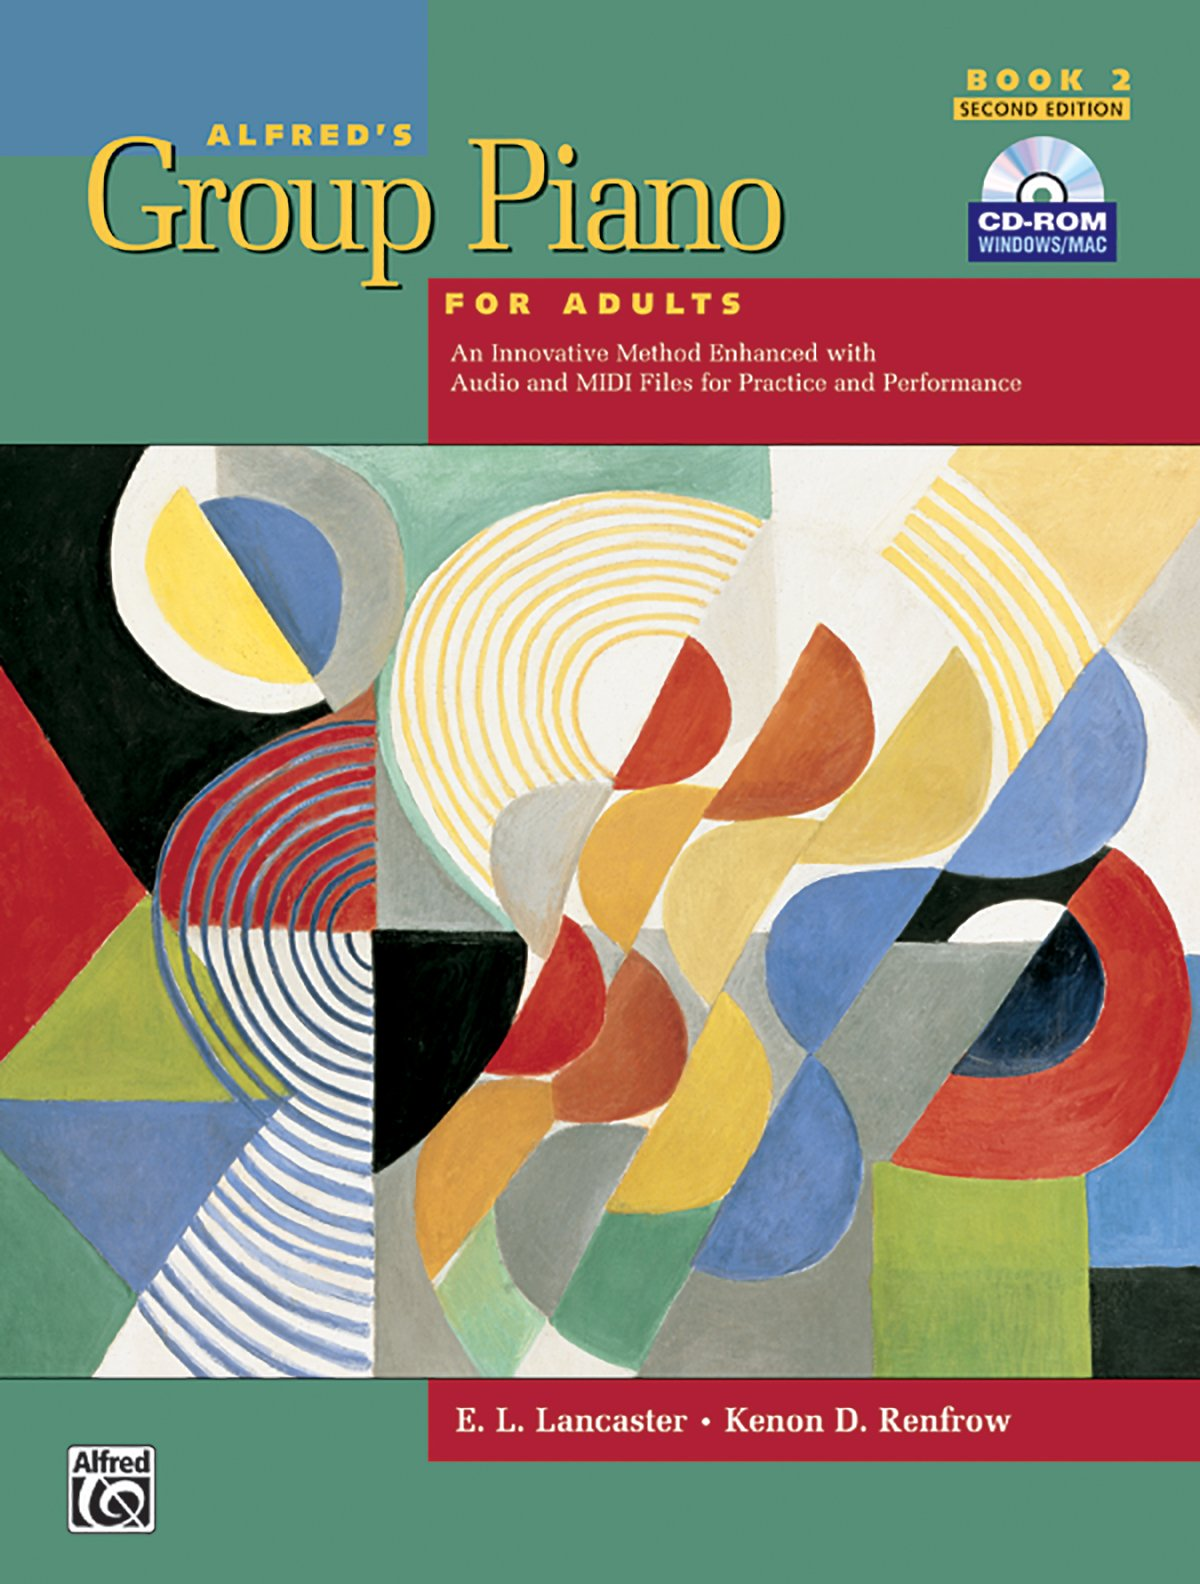 Alfred's Group Piano for Adults: Student Book 2, 2nd Edition (Book & CD-ROM) by Alfred